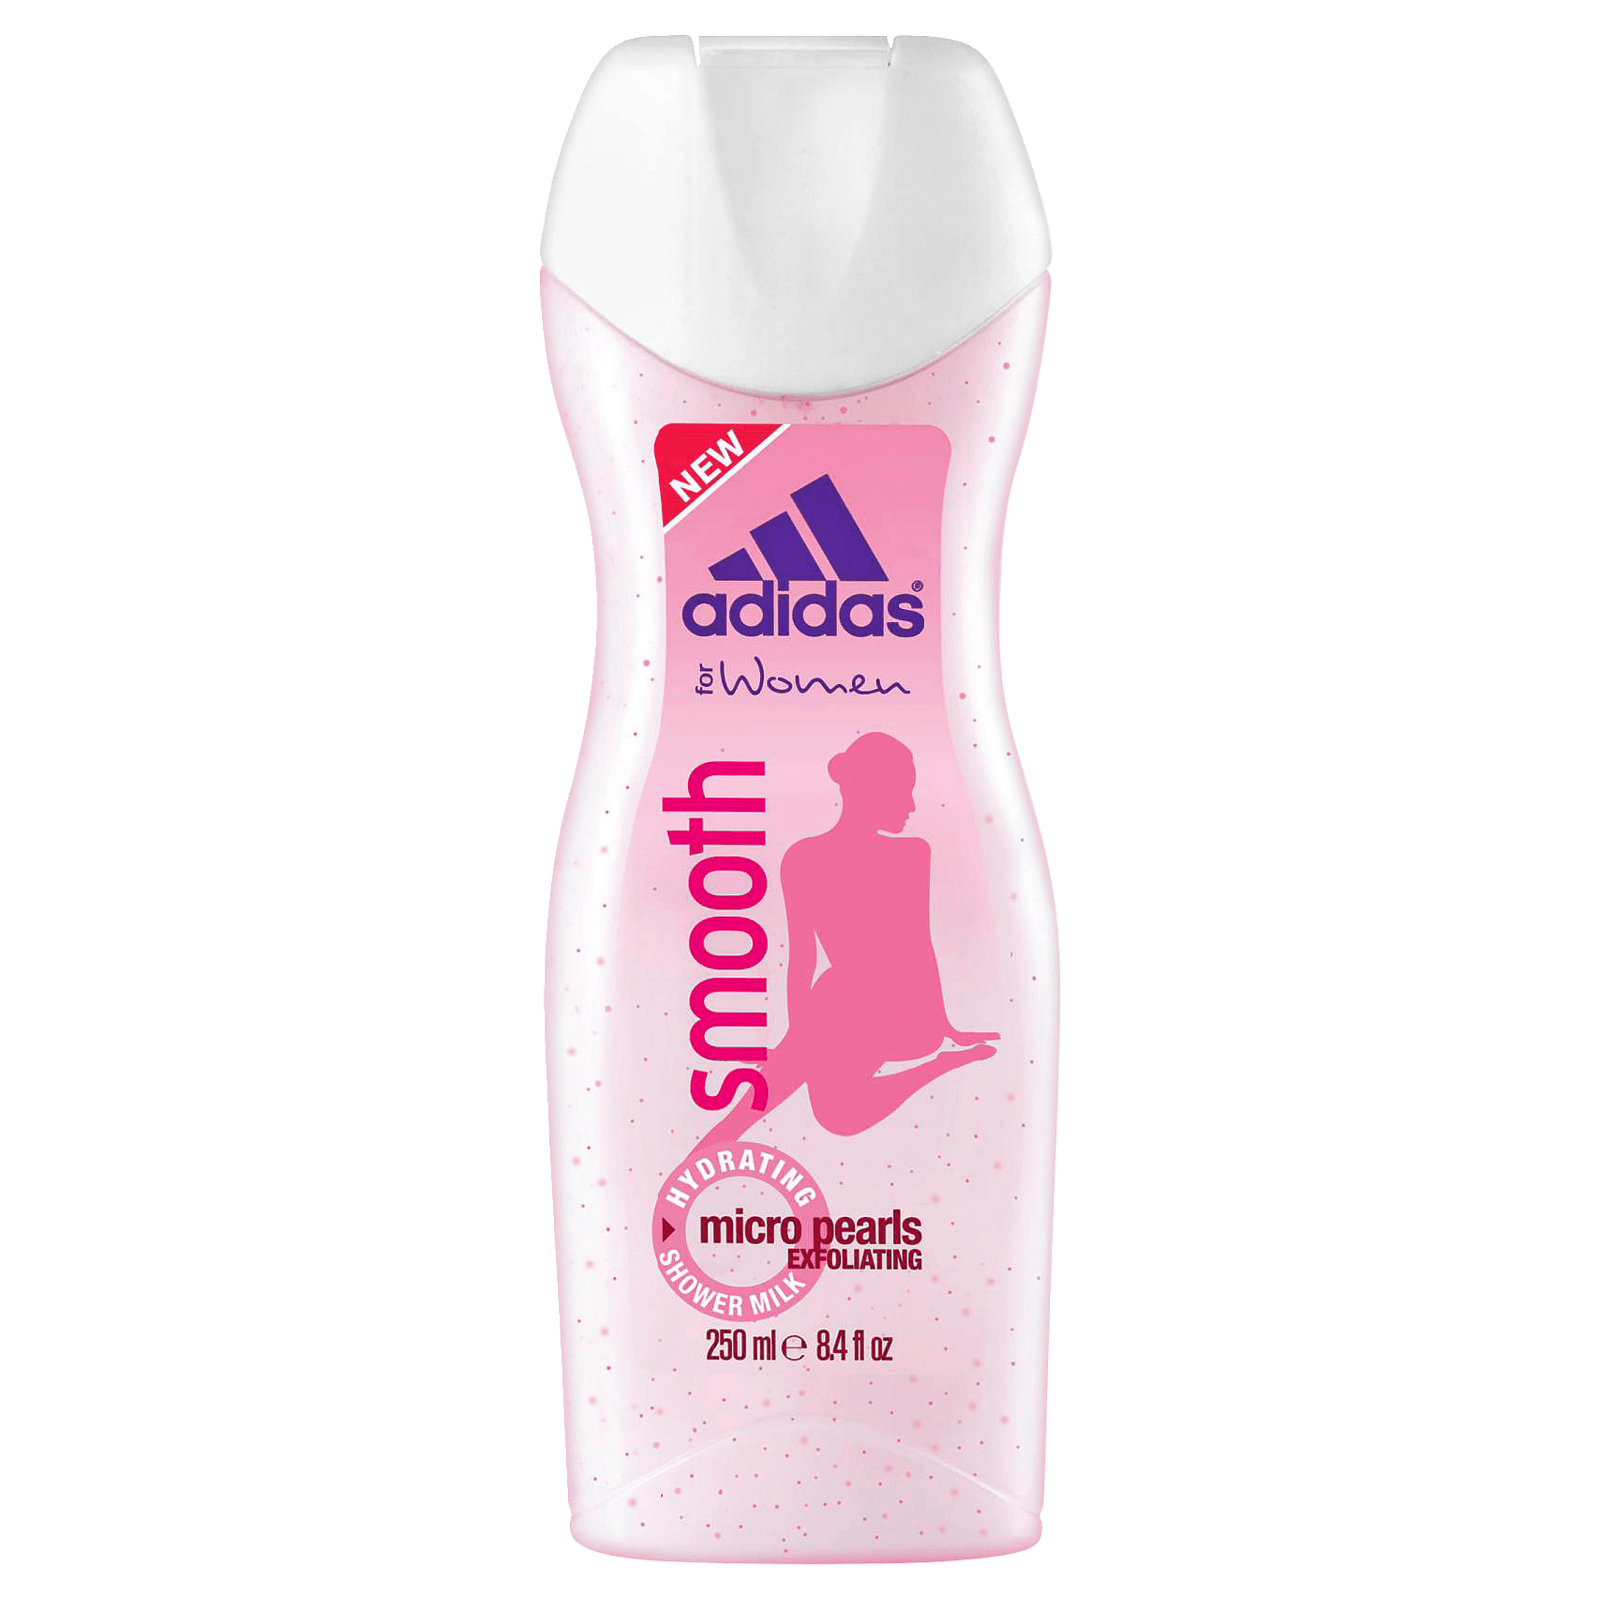 Adidas Women Smooth Shower-Gel 250ml